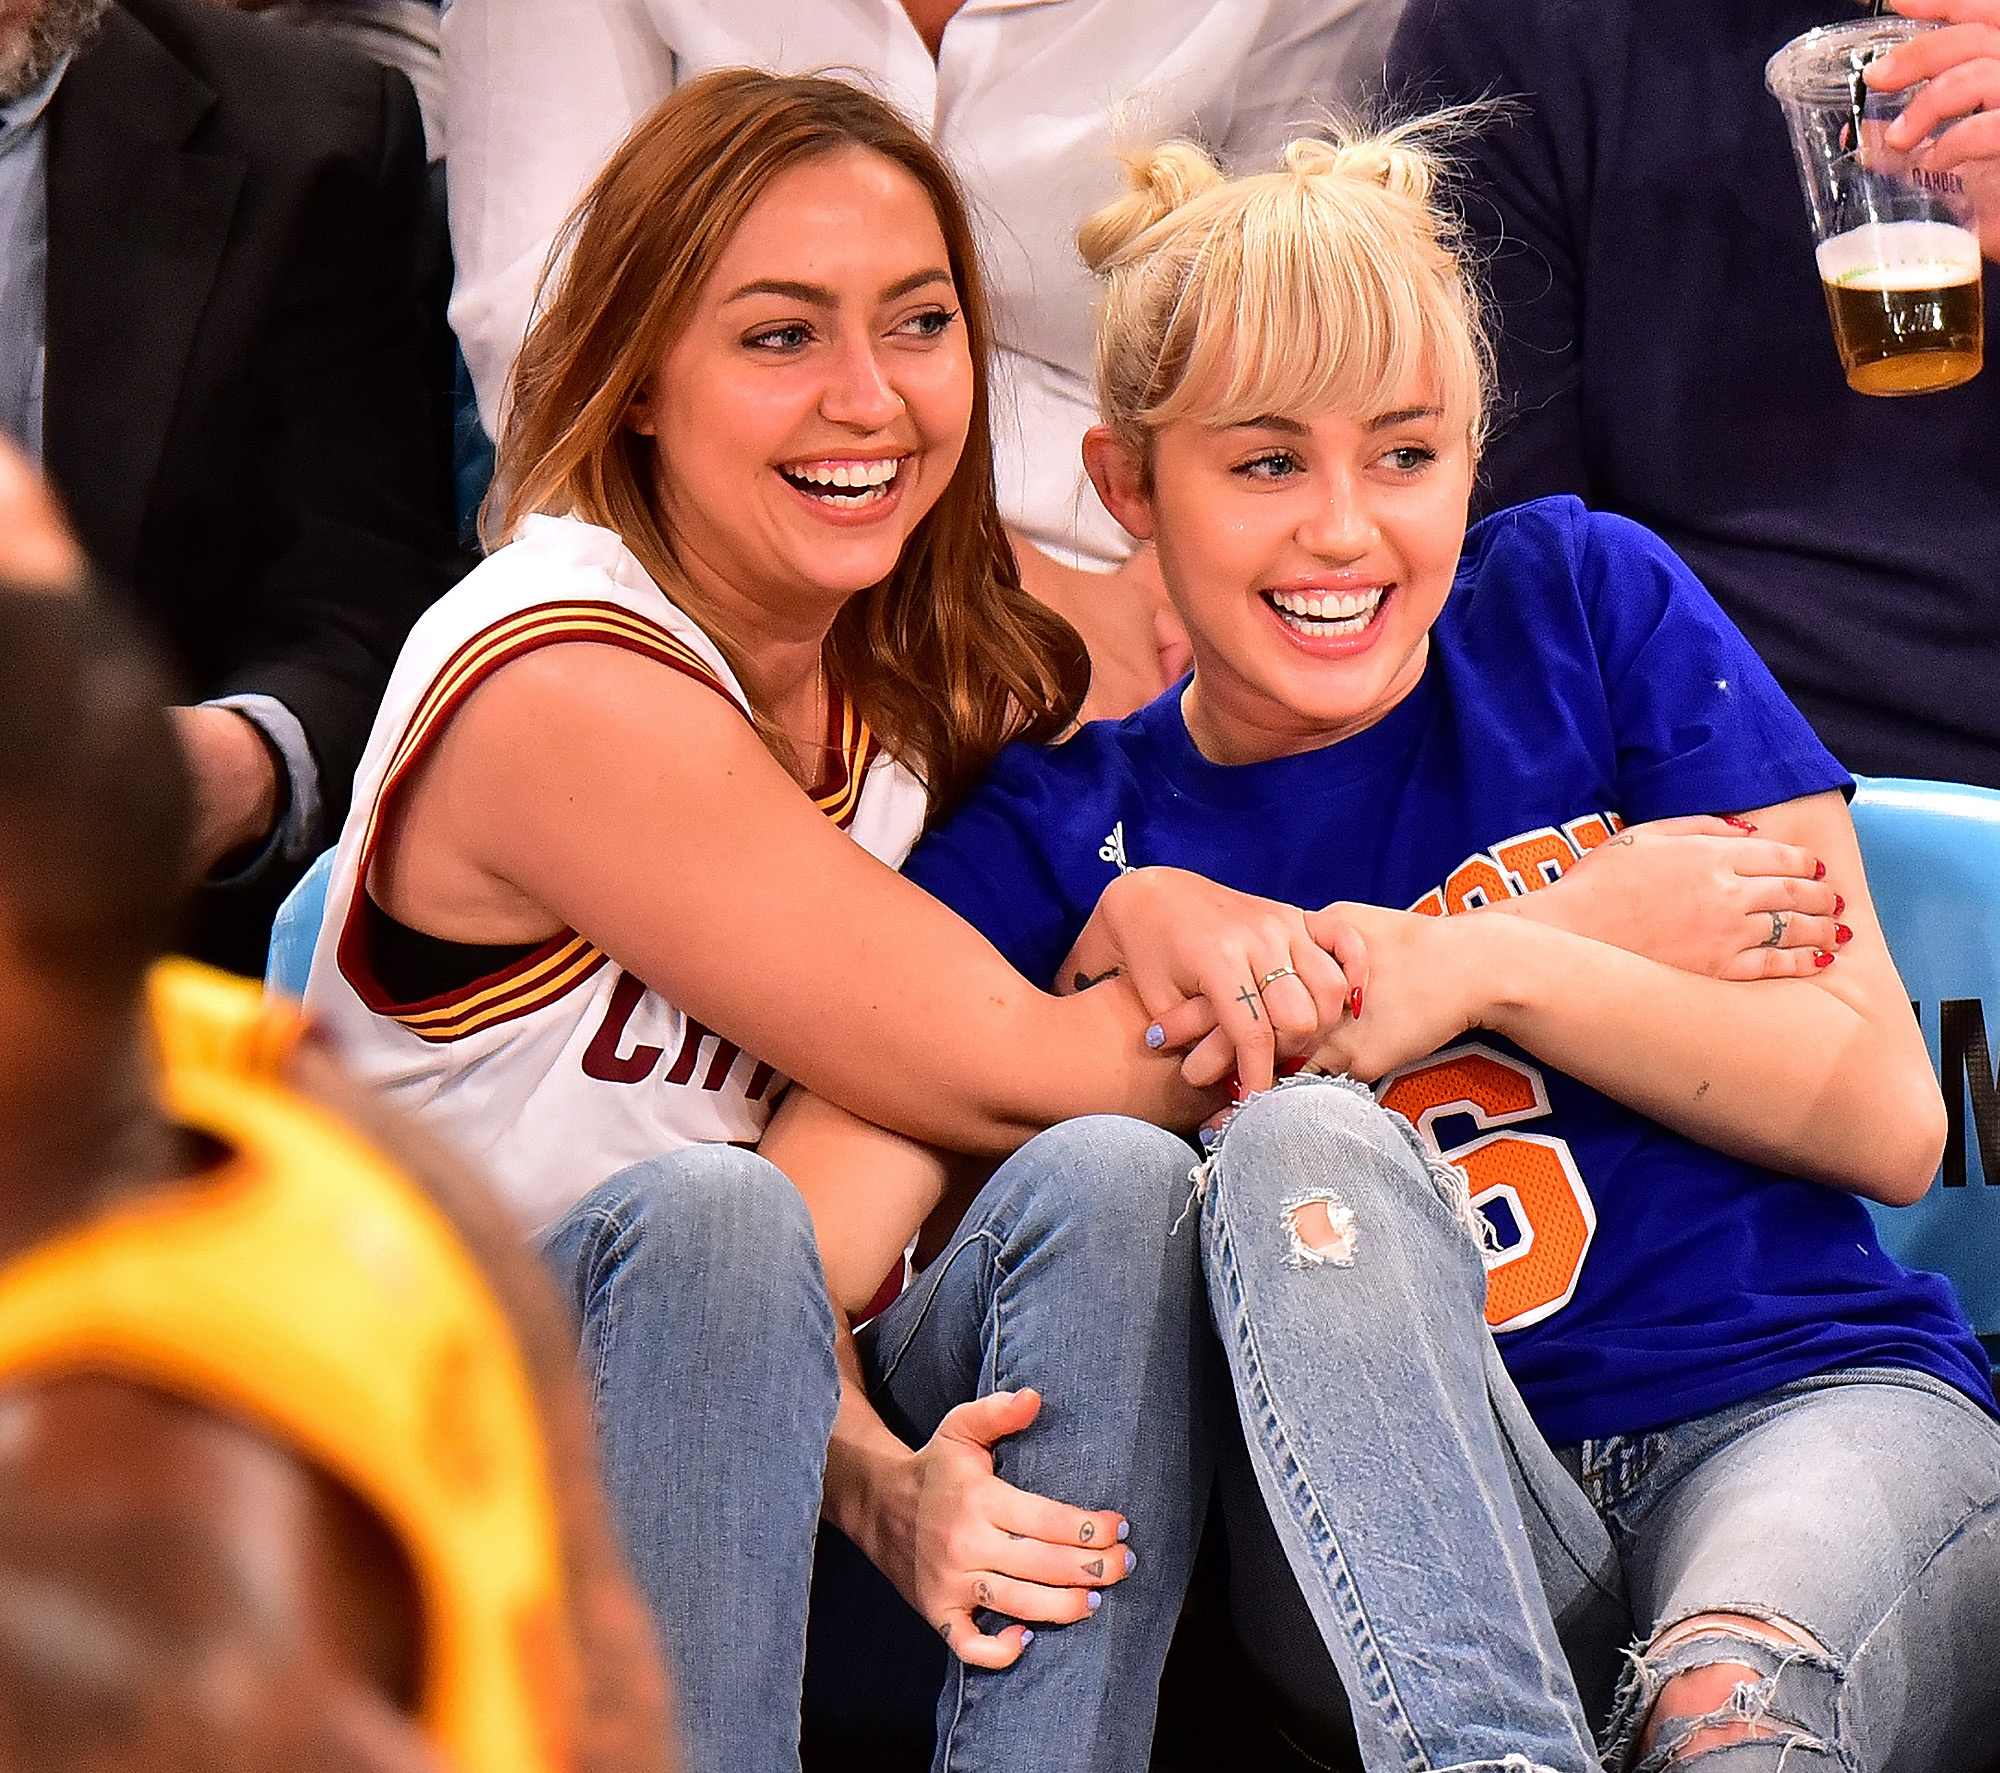 Celebrities Attend The Cleveland Cavaliers Vs New York Knicks Game - March 26, 2016